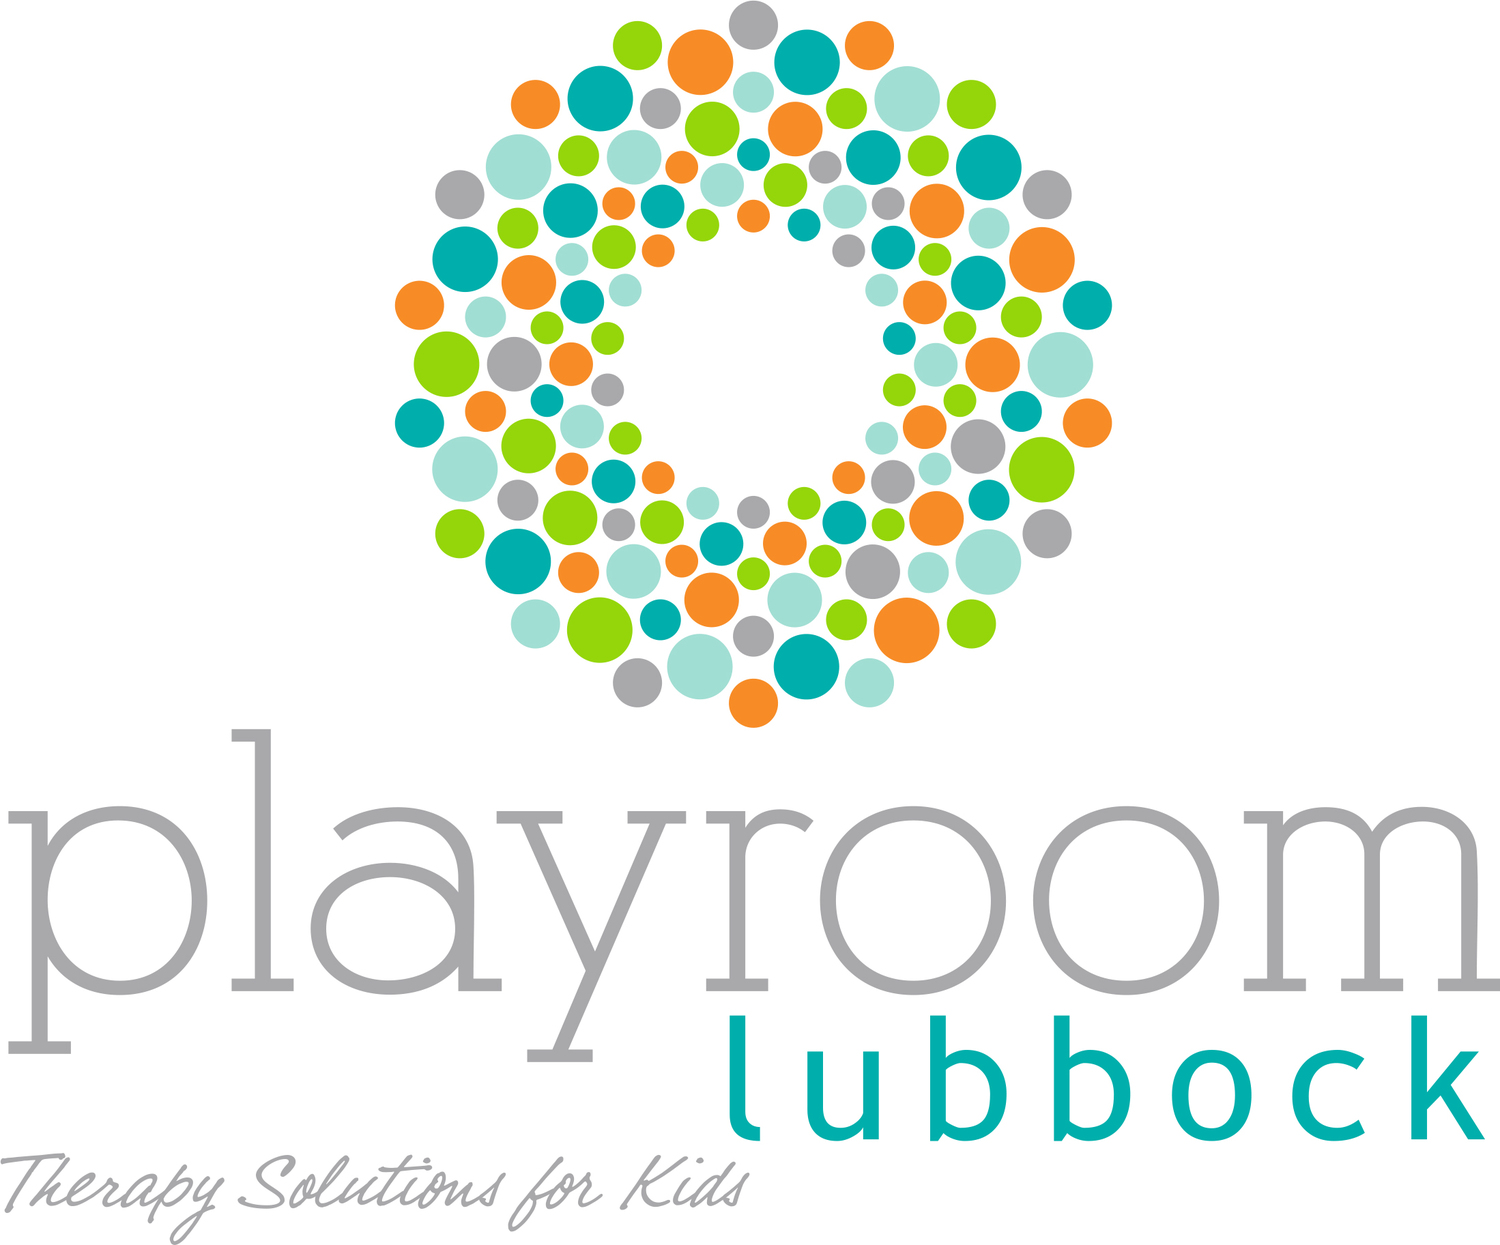 Playroom Lubbock